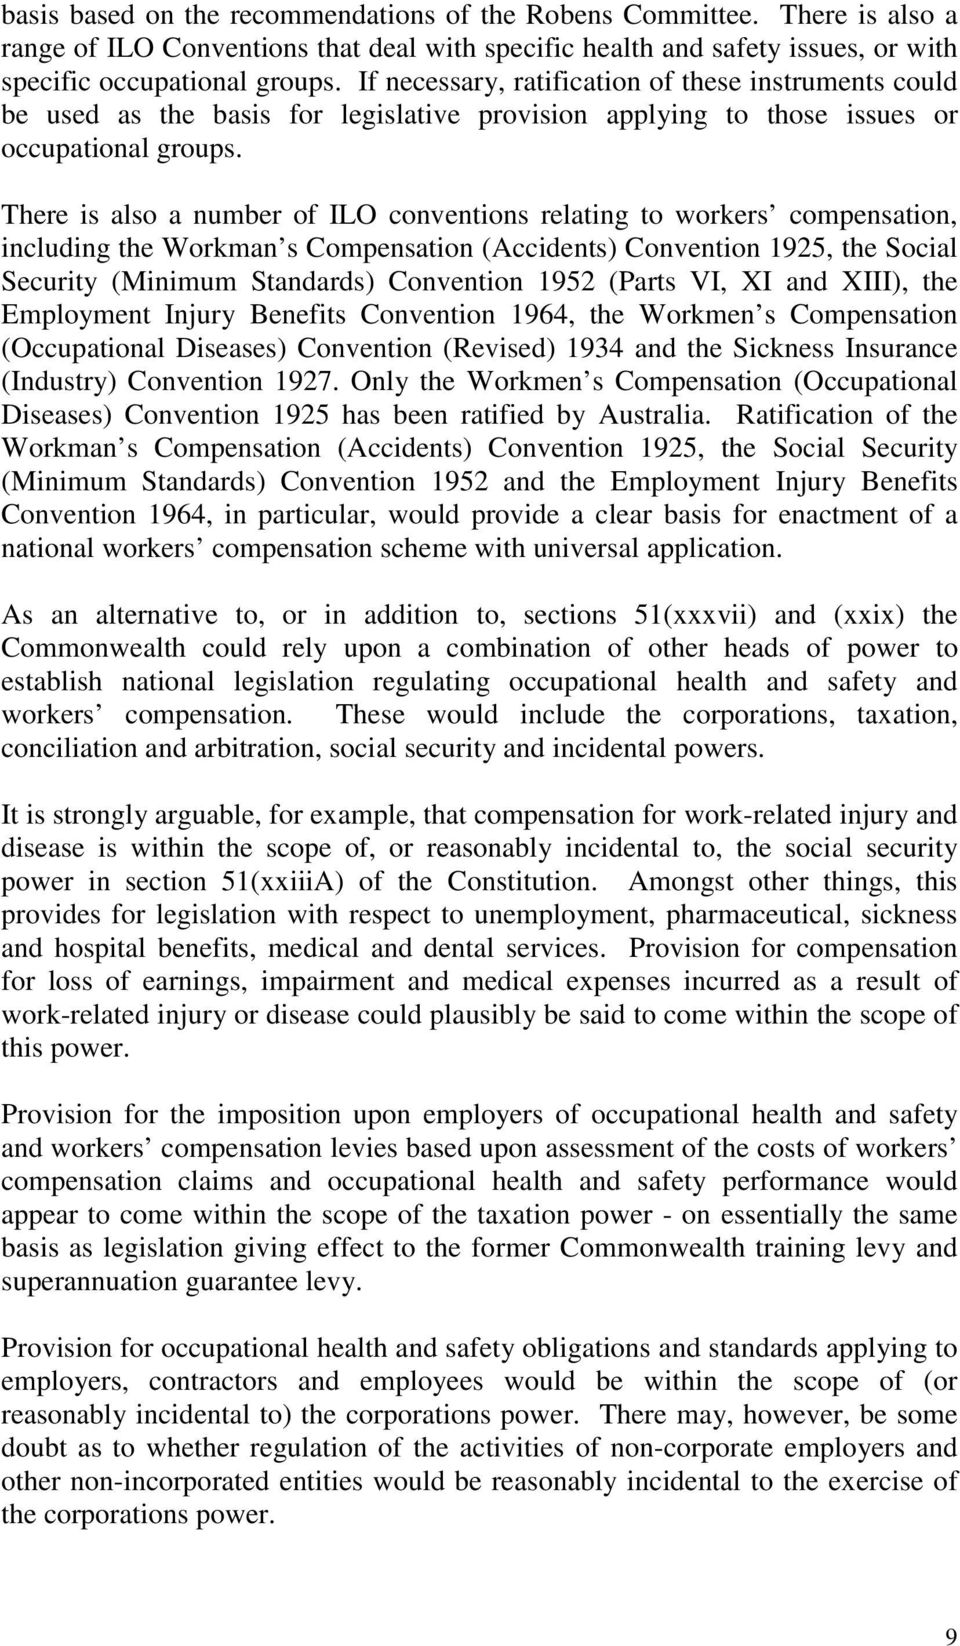 There is also a number of ILO conventions relating to workers compensation, including the Workman s Compensation (Accidents) Convention 1925, the Social Security (Minimum Standards) Convention 1952